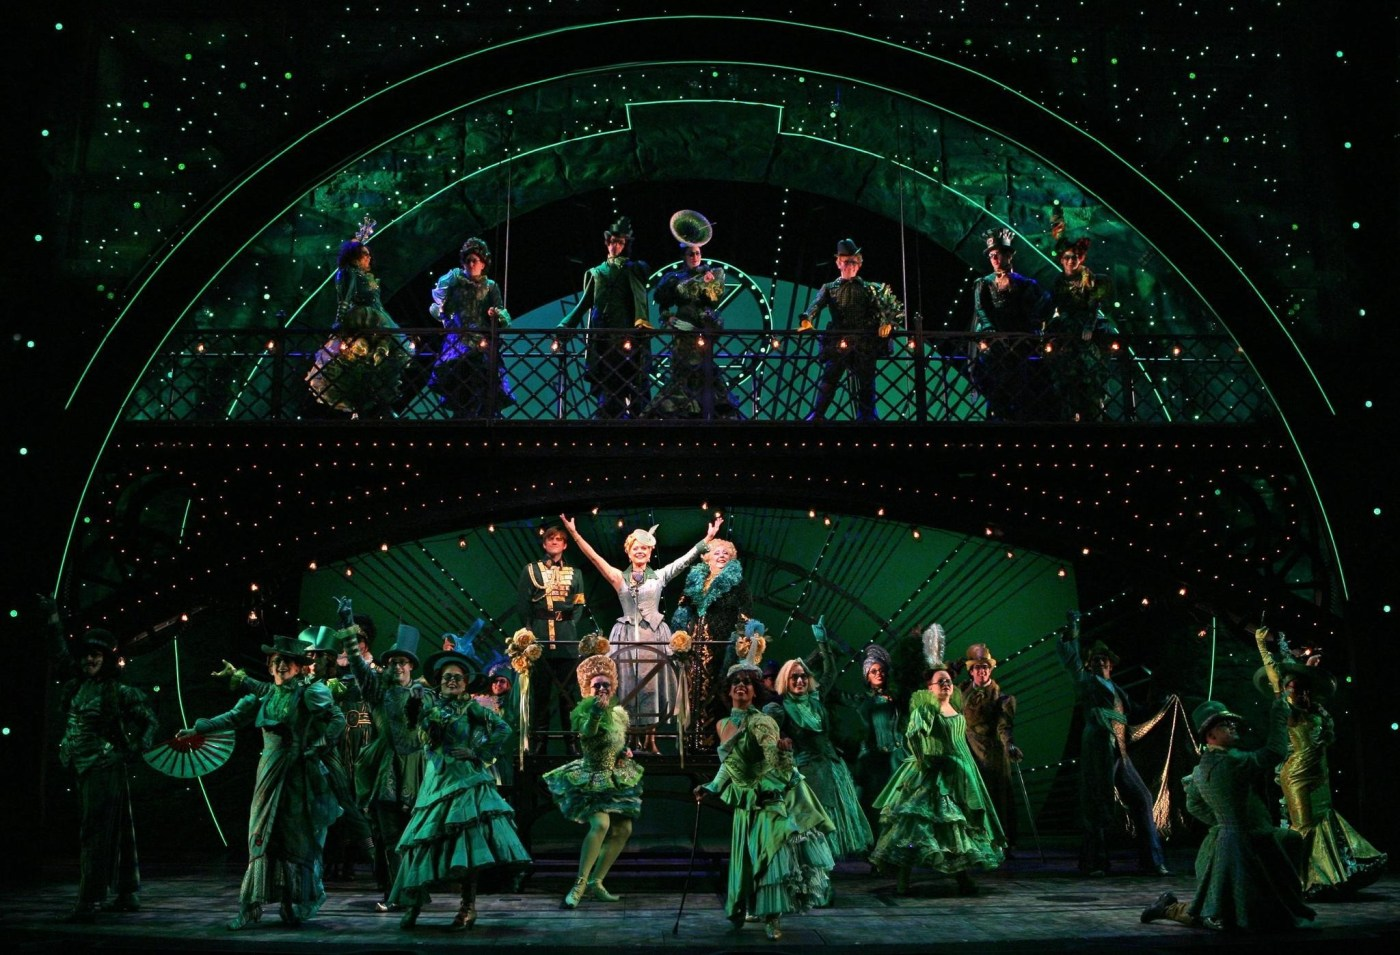 Smash Broadway musical 'Wicked' opens at Playhouse Square next ...